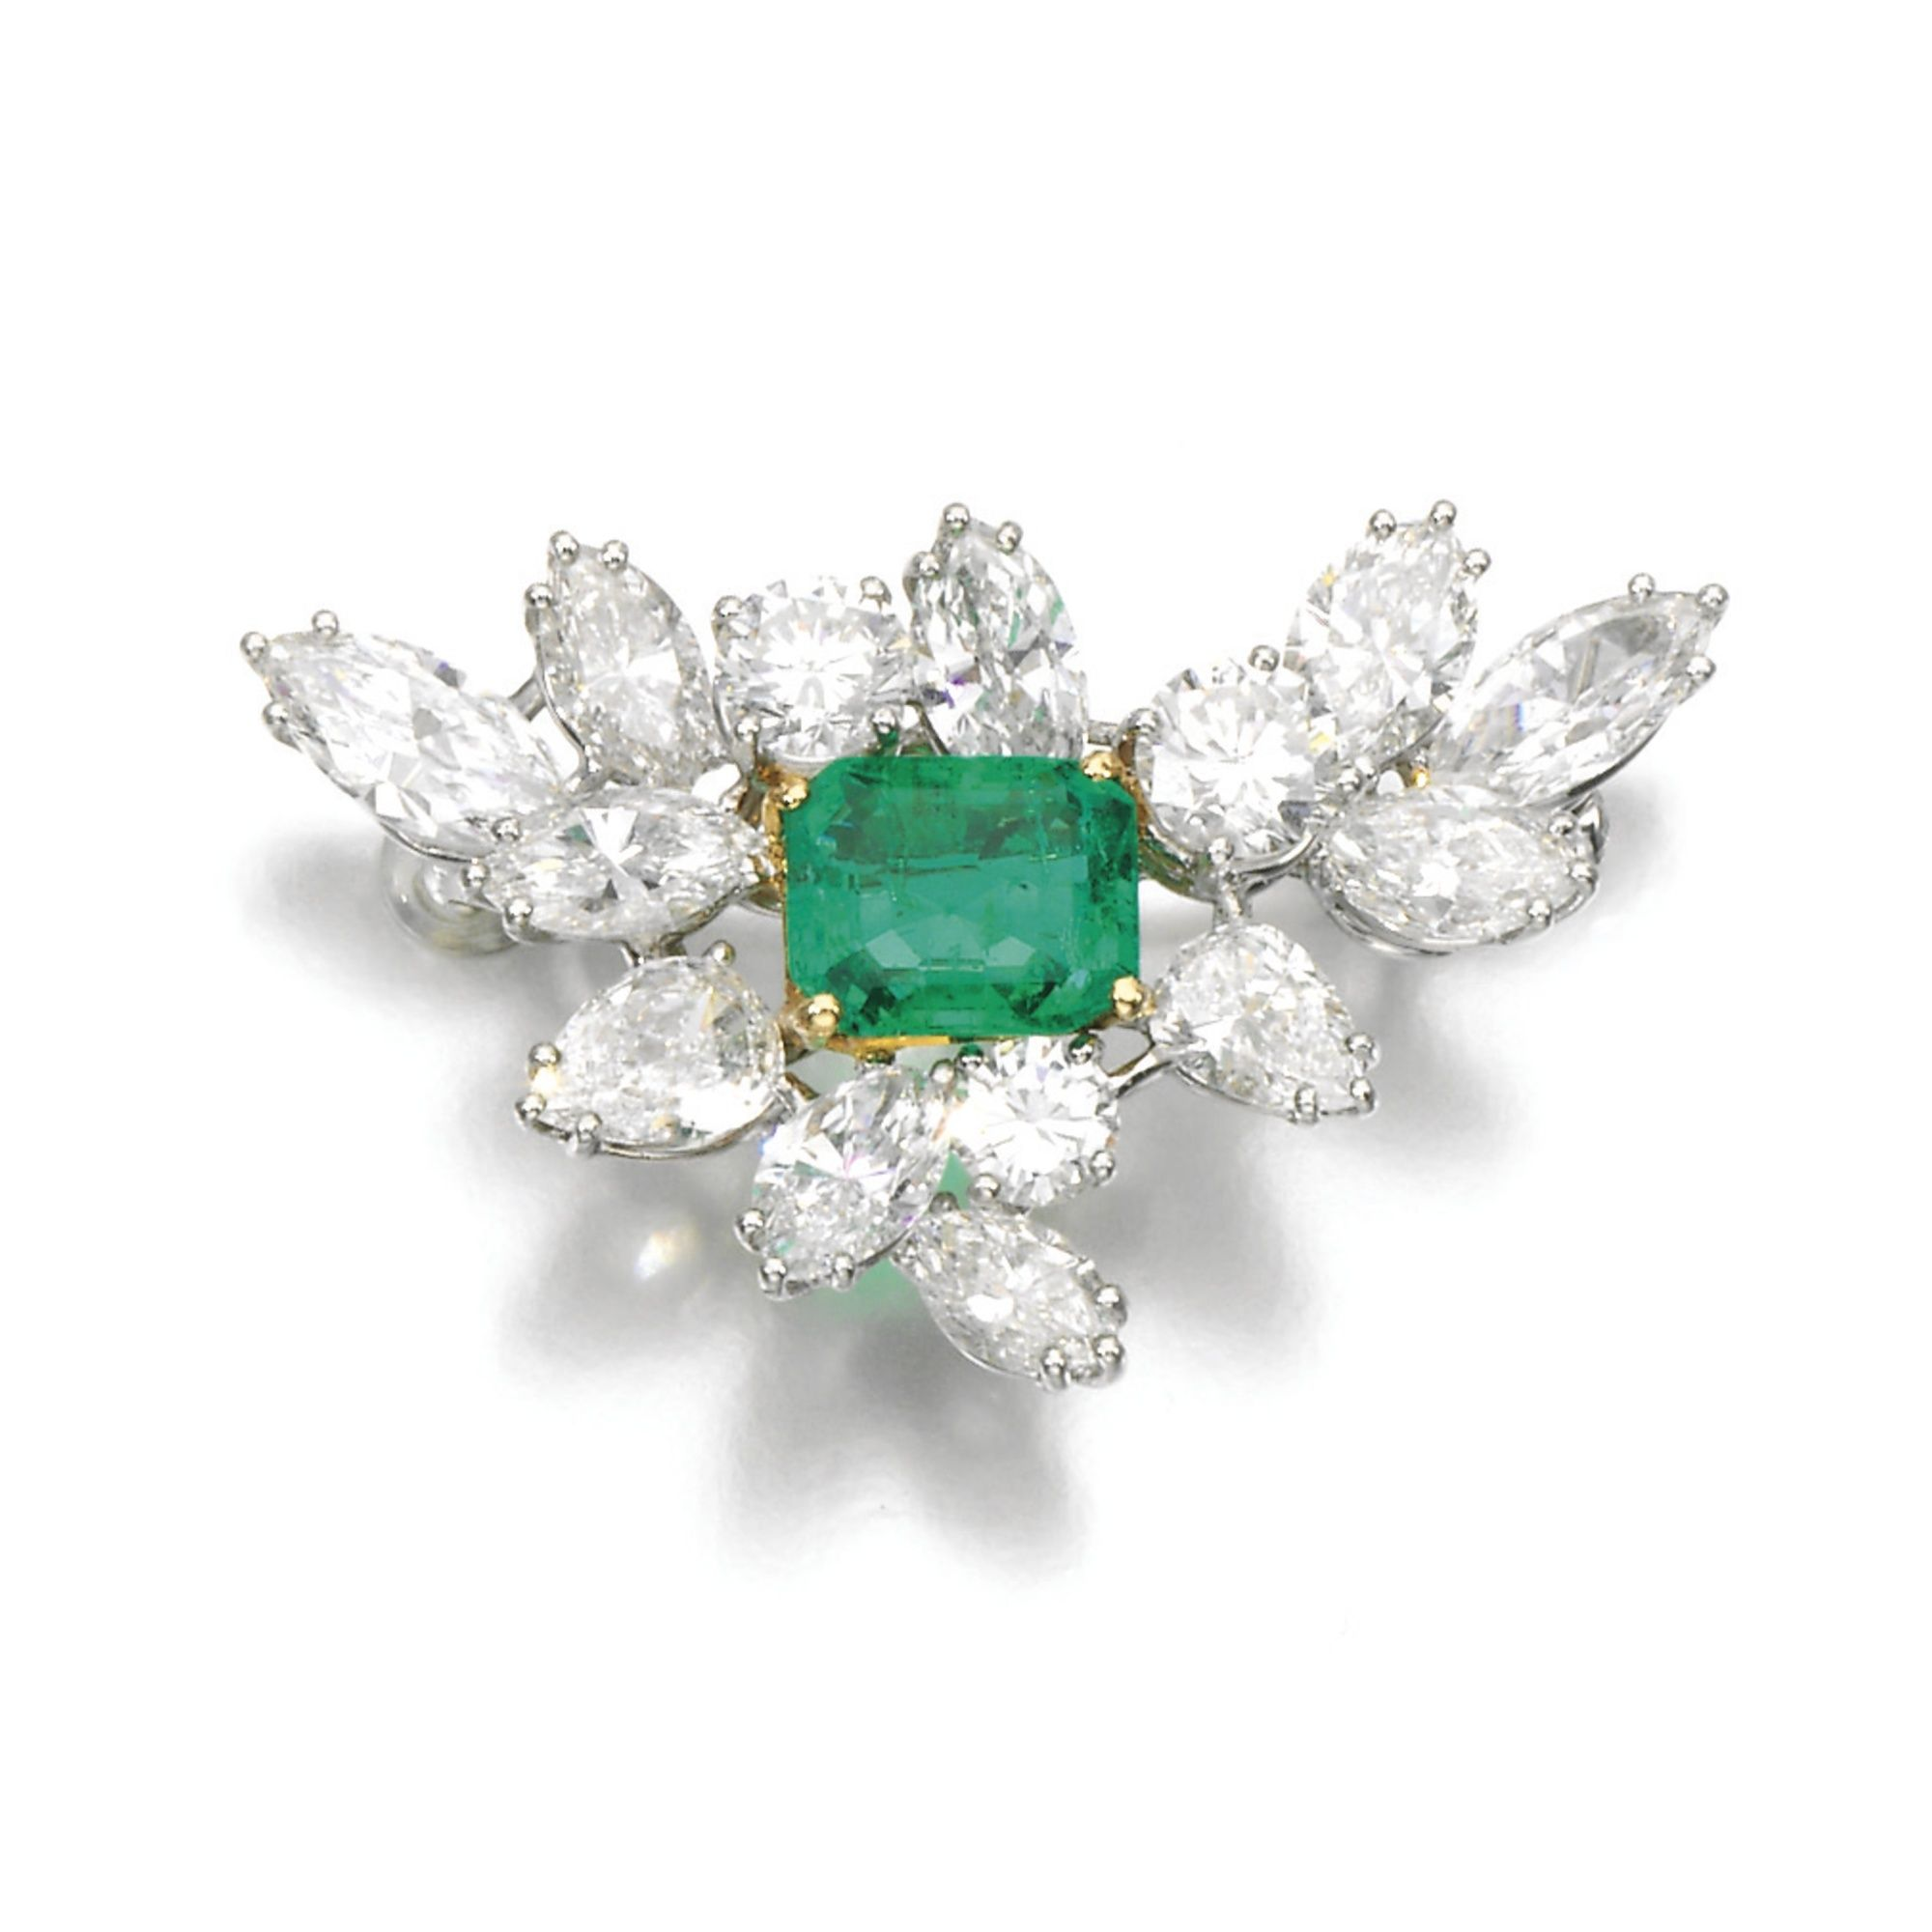 statement the elegance brilliant multitude emeralds magazines a hires bracelet pieces diamonds style article with in brazil watches set cut white jewellery shaped you image make to gold seven from add of gives and square onyx emerald